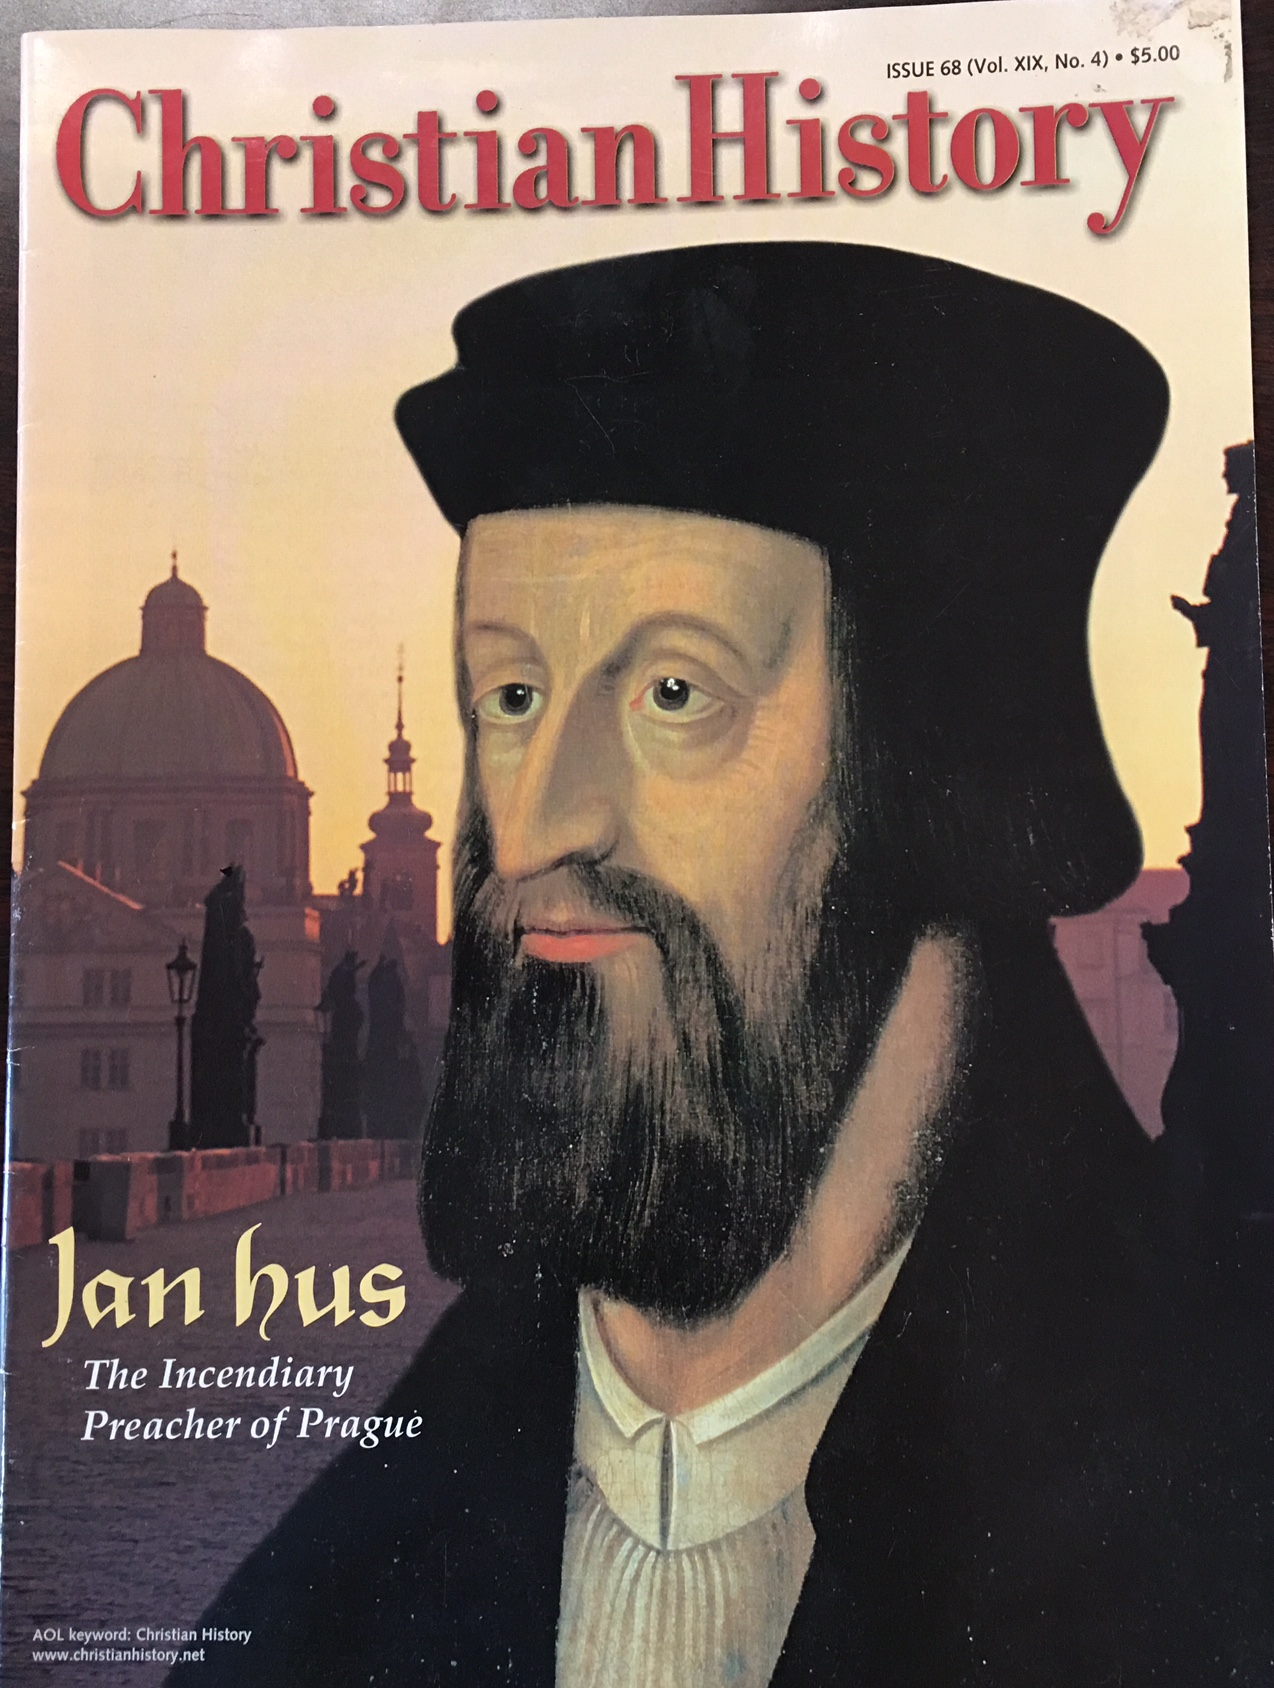 Image for Jan Hus, The Incendiary Preacher of Prague - Christian History Magazine, Issue 68 (Vol. XIX, No. 4)